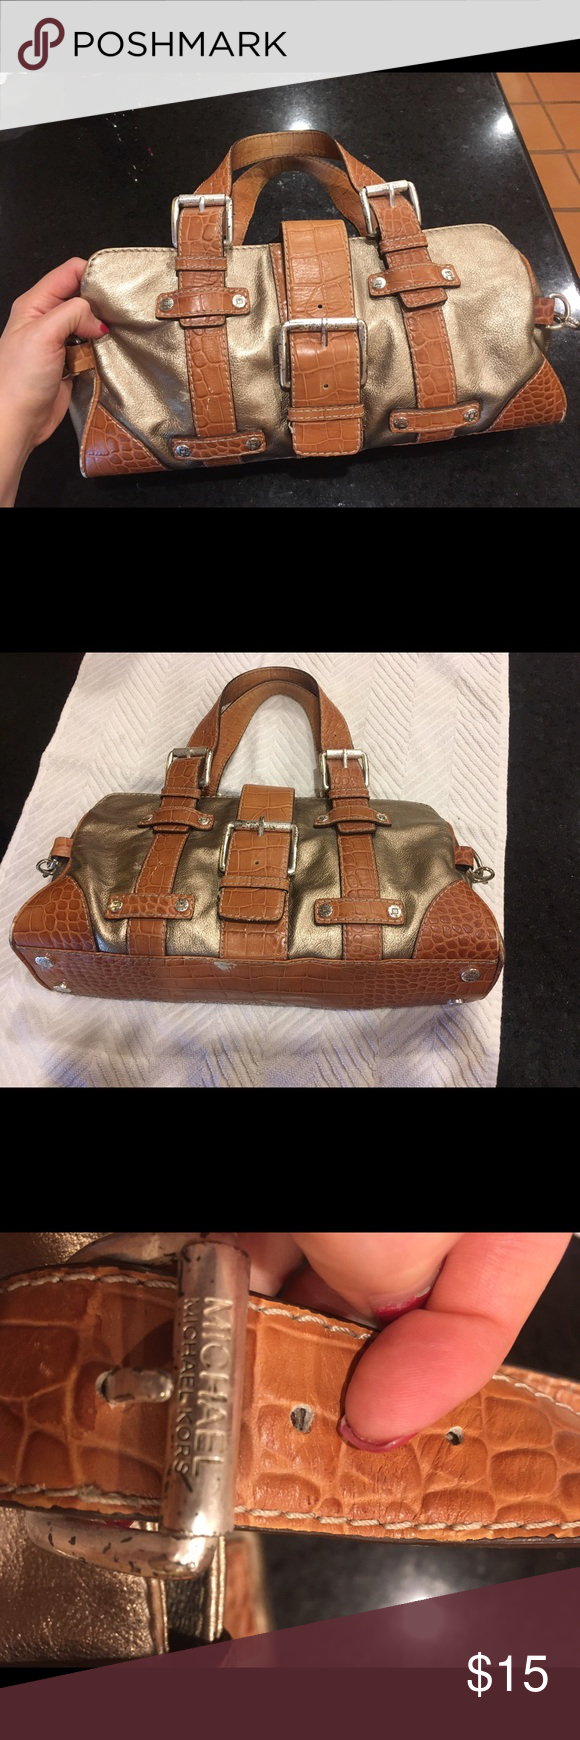 Michael Kors purse Michael Kors small gold metallic satchel with crock print leather. Silver studding and detailing.  Clean inside and ready for an adventure.  Lots of wear, but lots of life left. Offers welcome. MICHAEL Michael Kors Bags Satchels